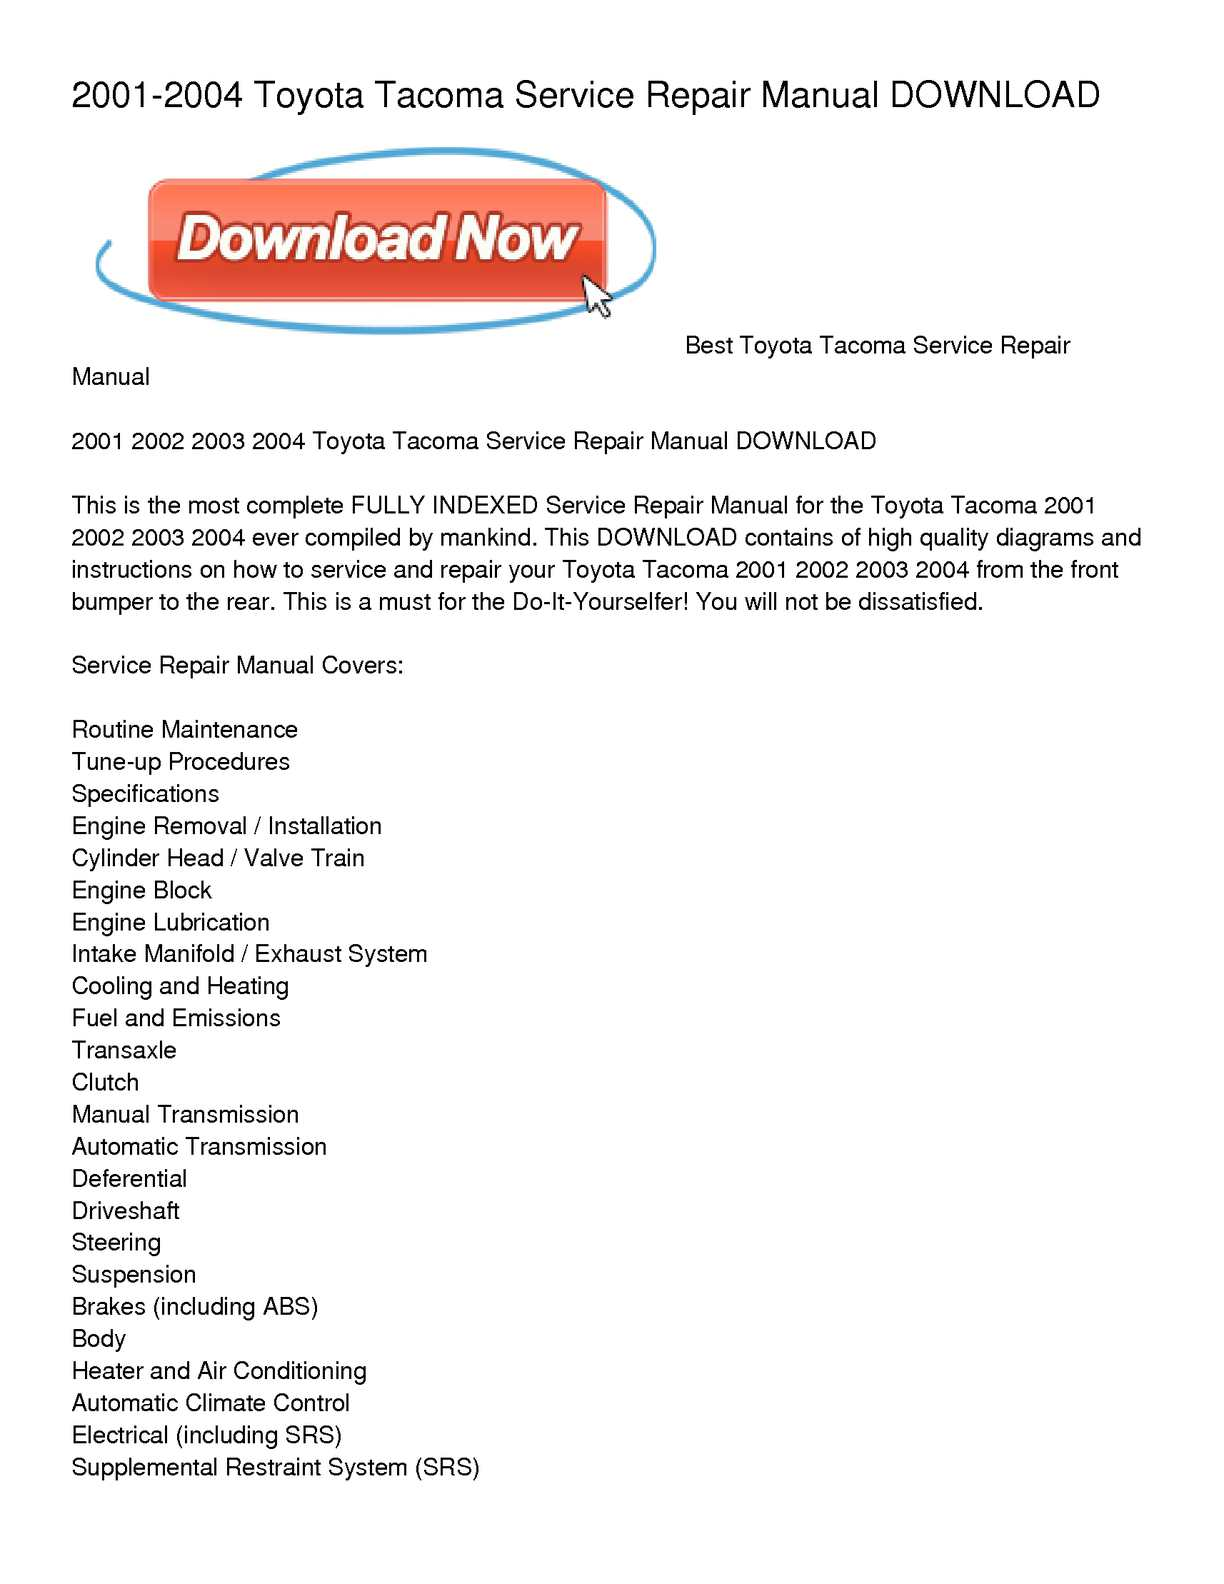 2002 Tacoma Engine Diagram Wiring Library Calamo 2001 2004 Toyota Service Repair Manual Download